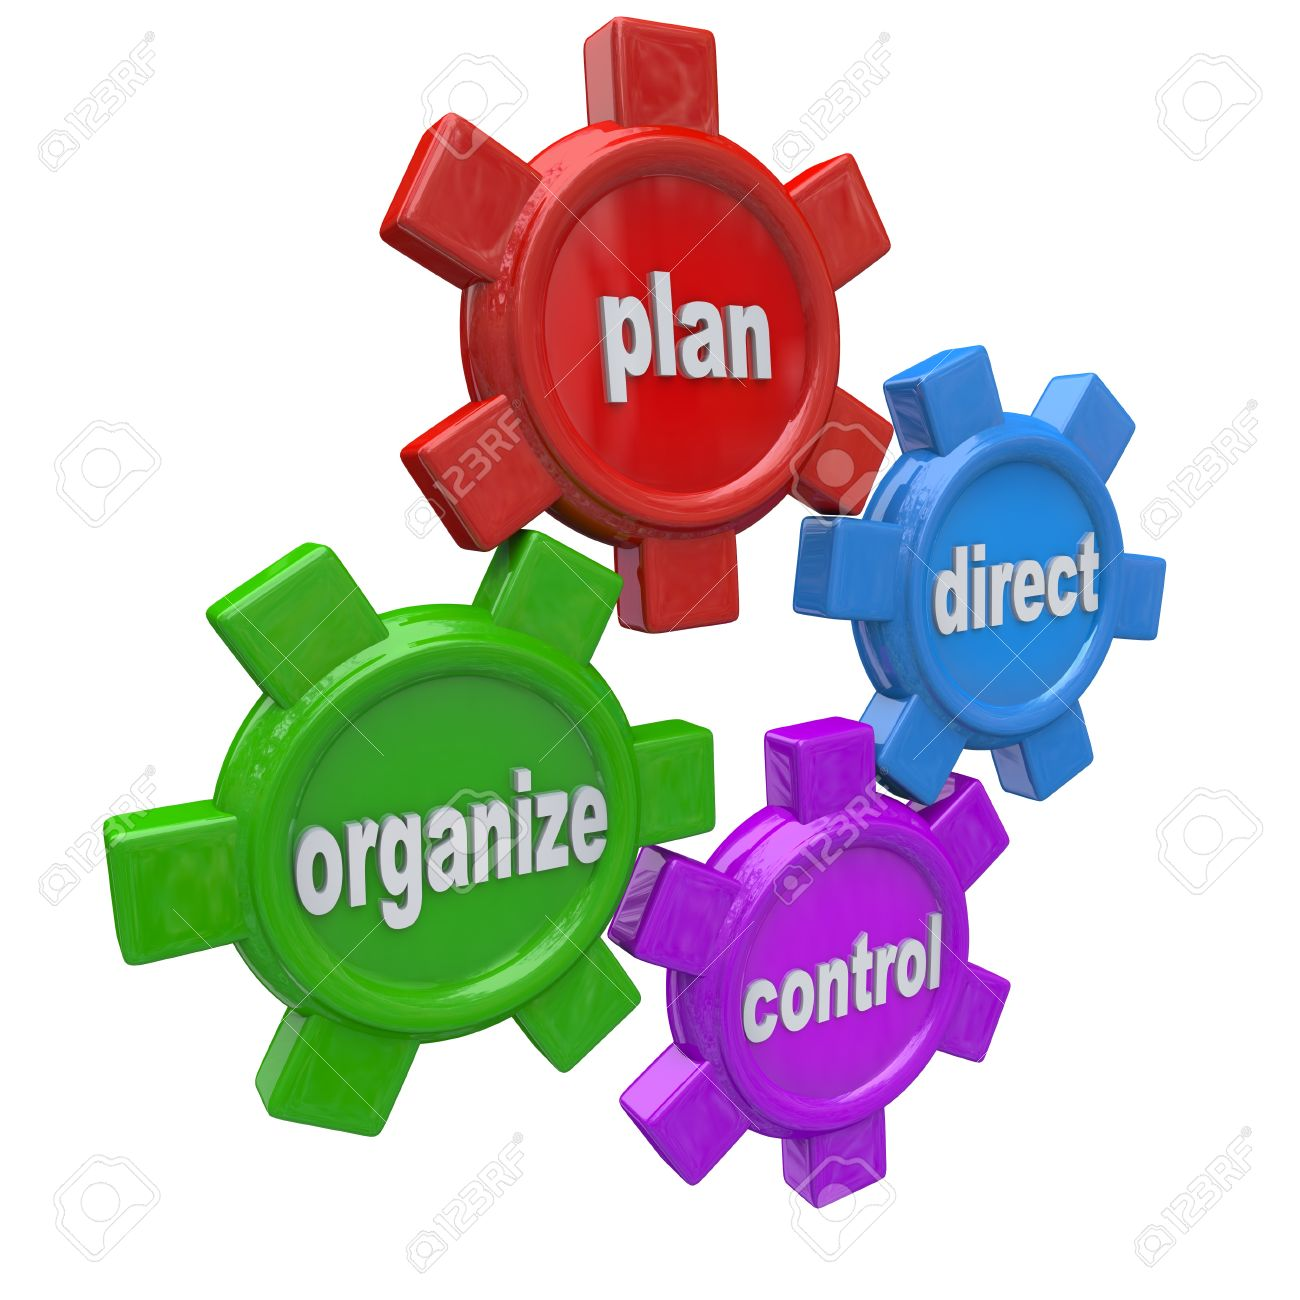 four gears symbolizing the four principles of good management four gears symbolizing the four principles of good management style plan organize direct